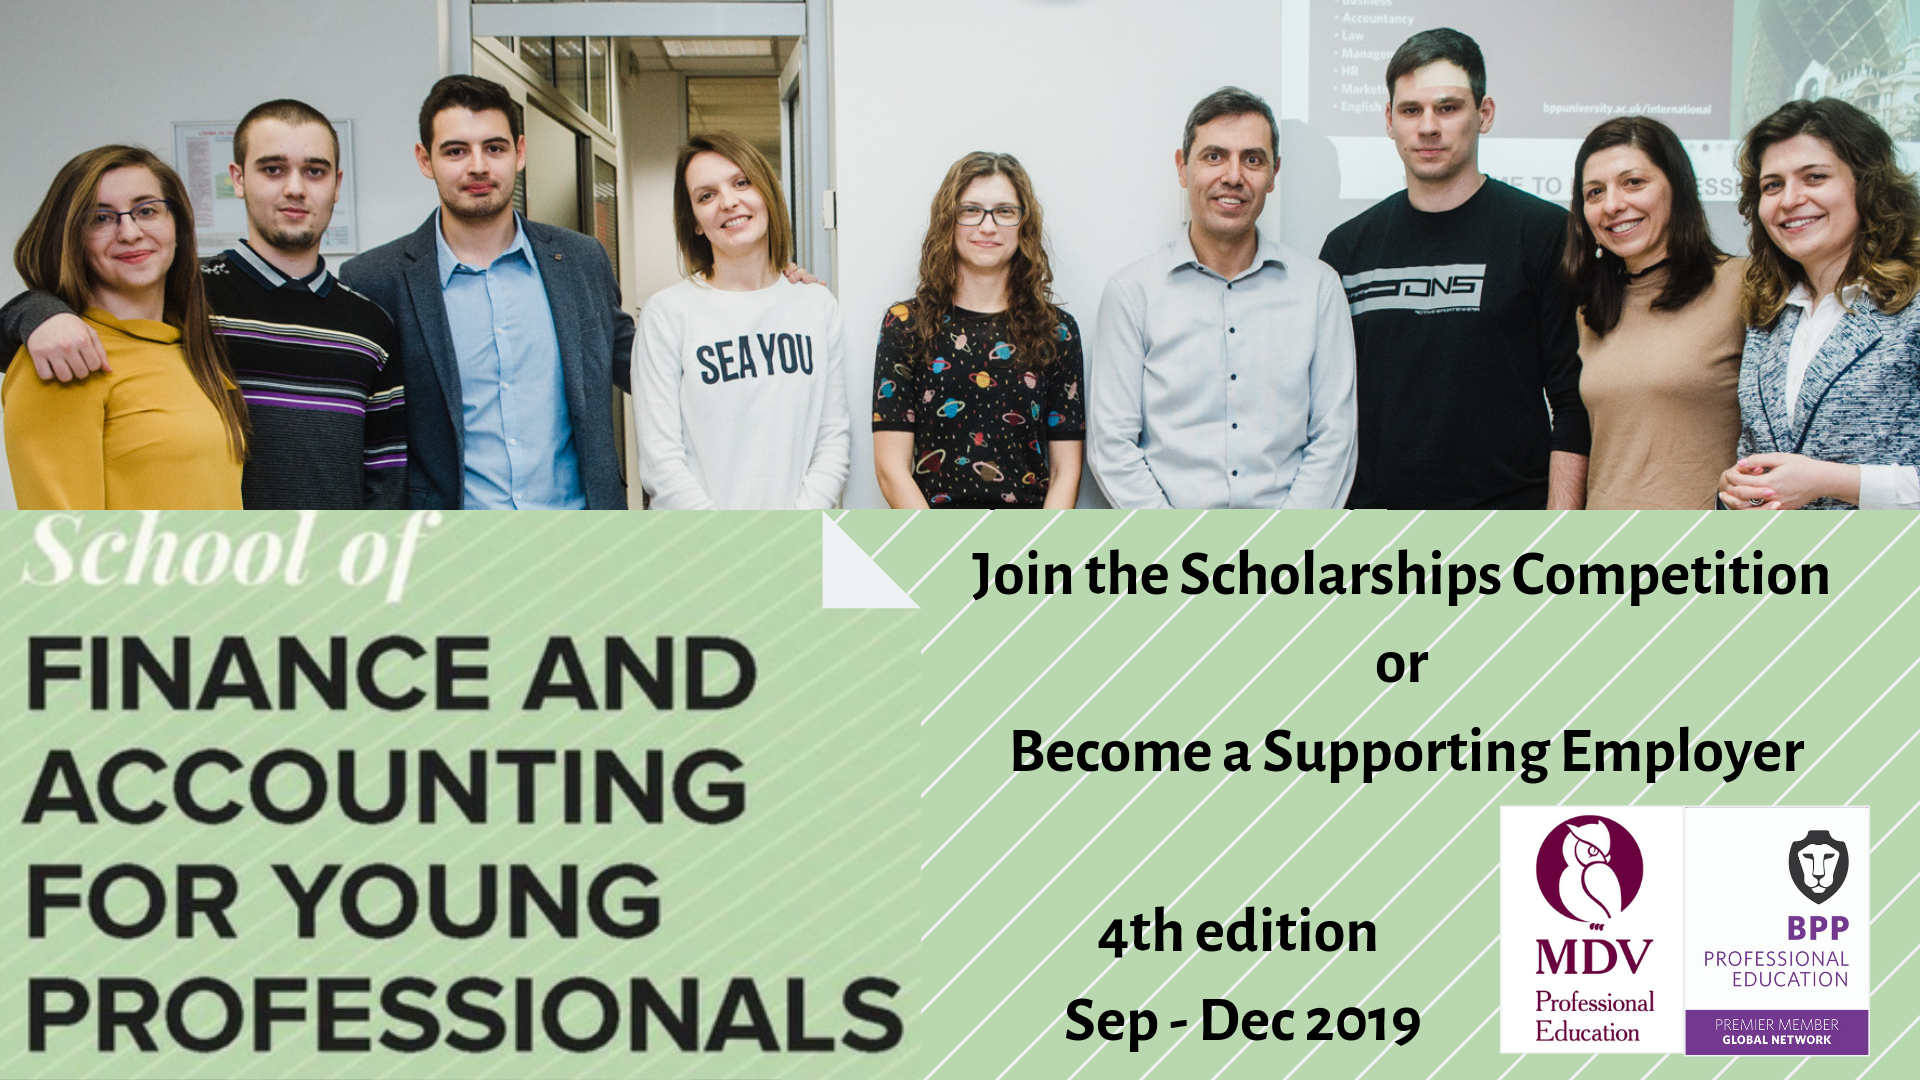 School of Finance and Accounting for Young Professionals 4th edition 2019